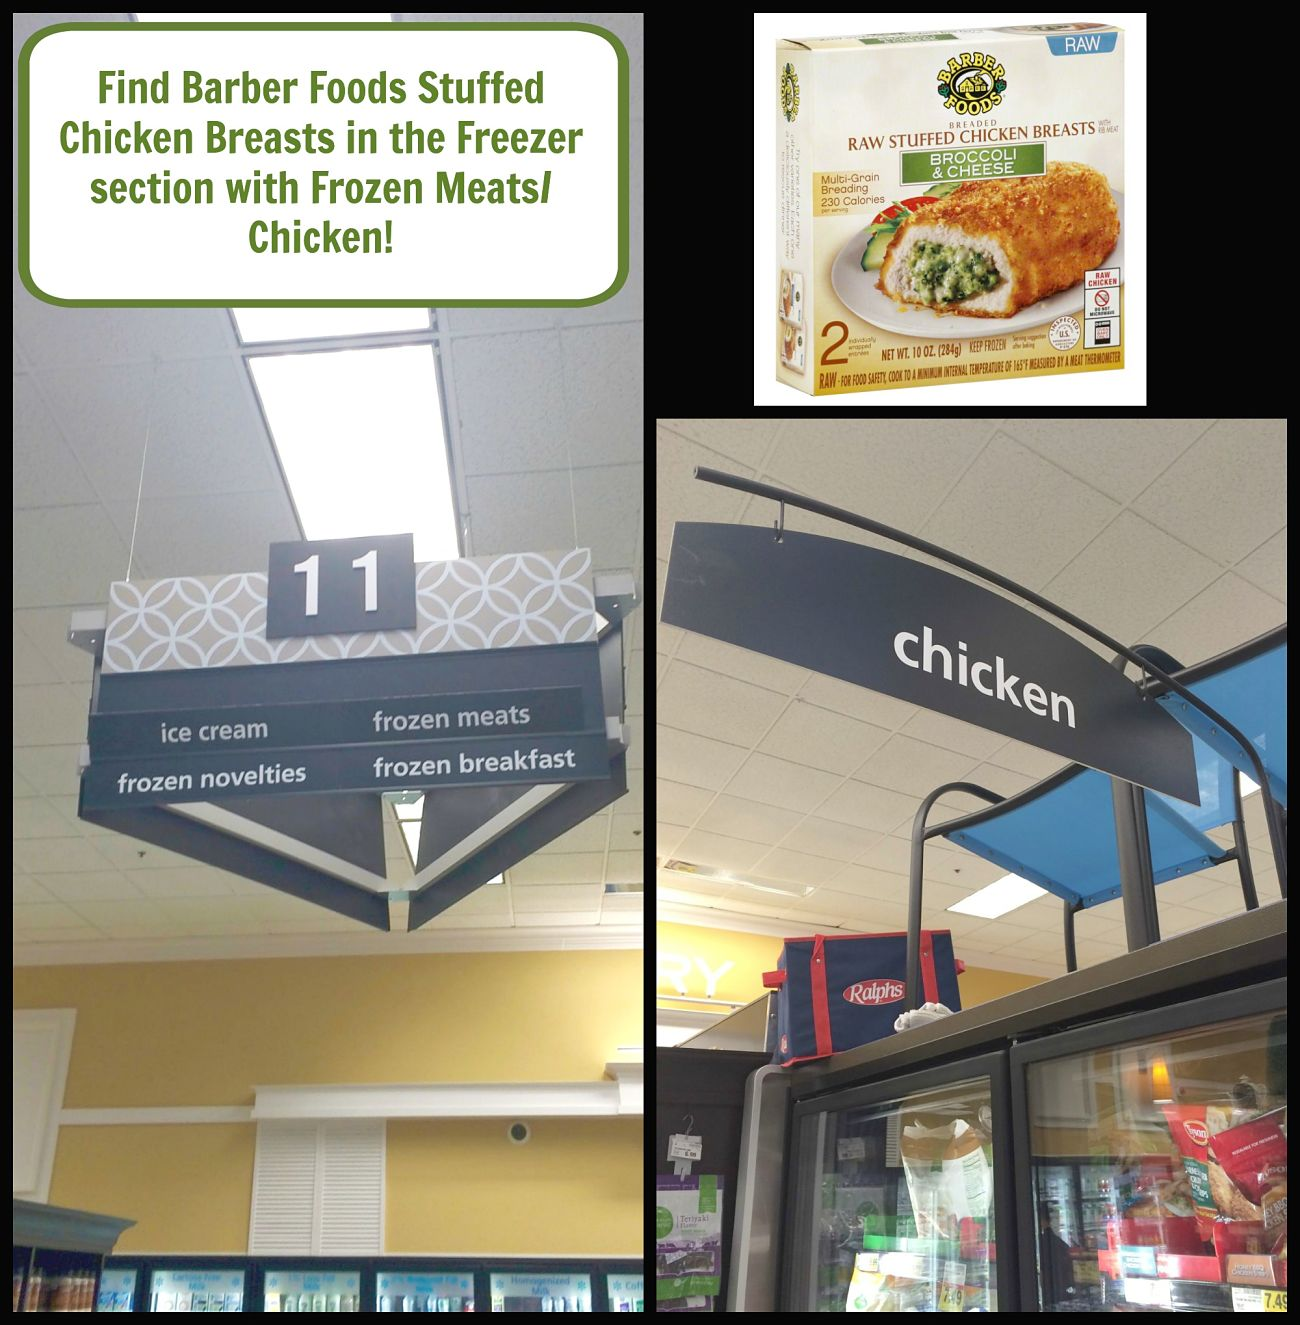 Barber Foods Stuffed Chicken Breast Location in Store